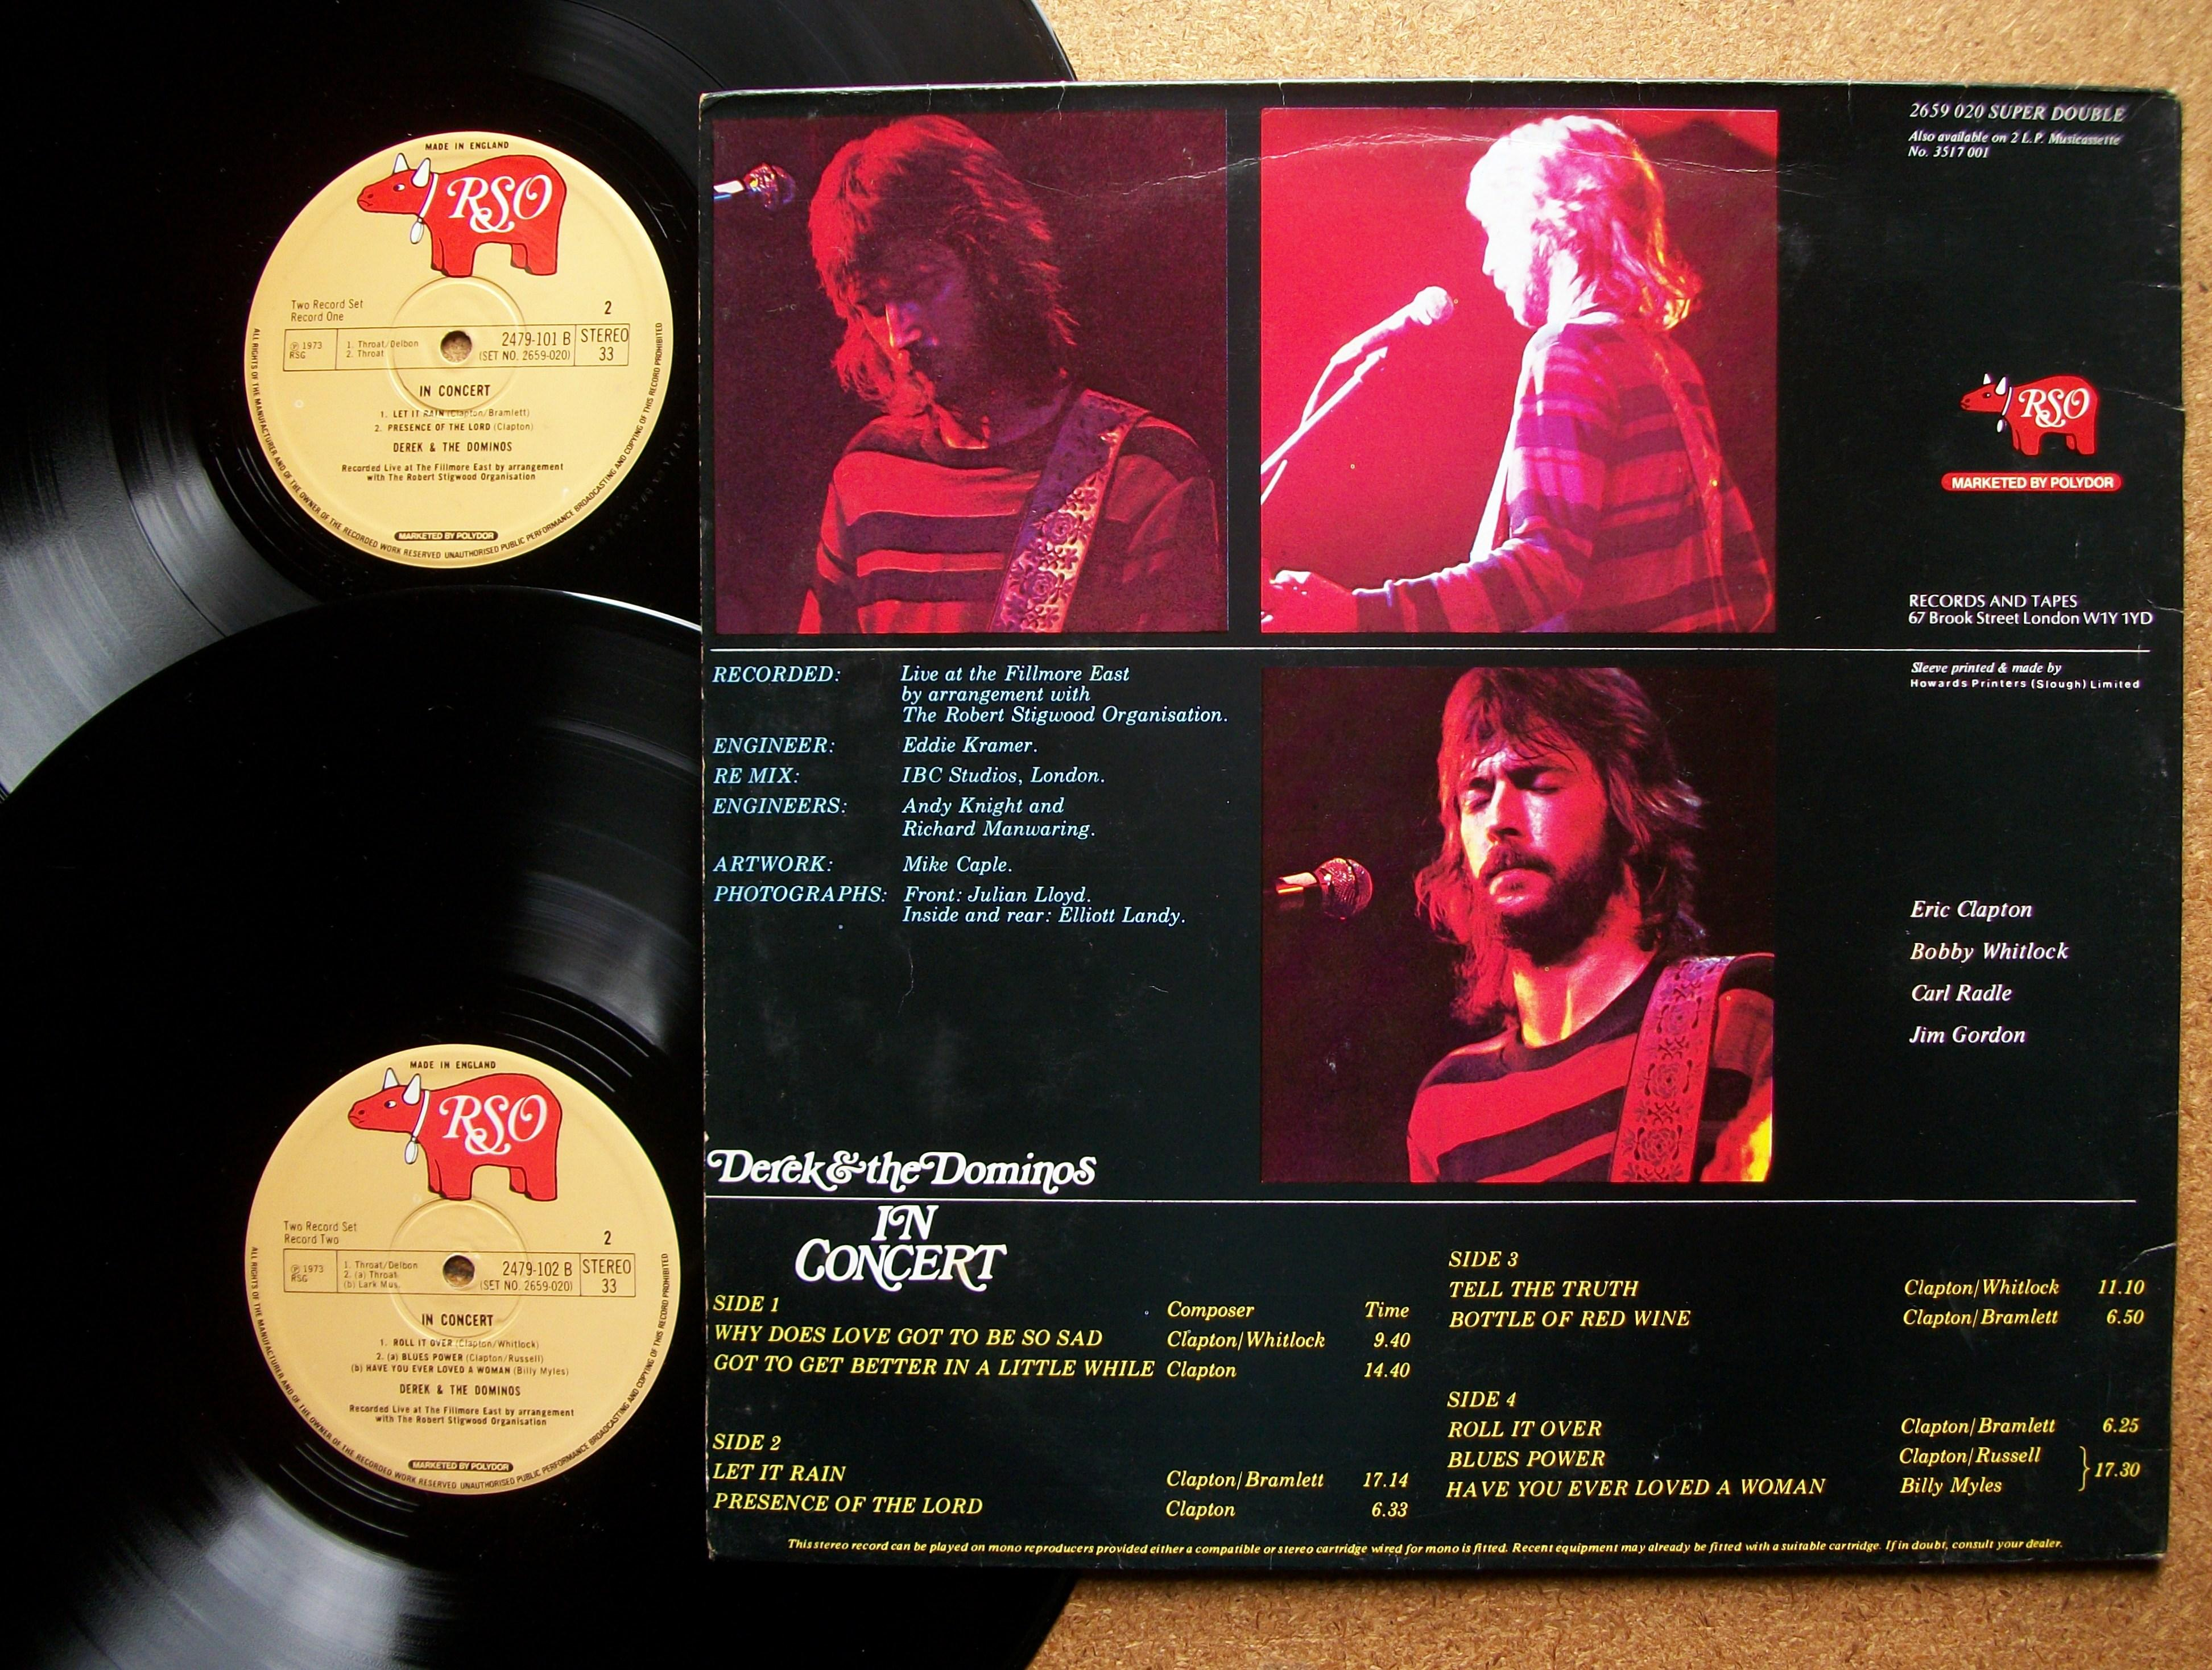 SINISTER VINYL COLLECTION: DEREK AND THE DOMINOS U2013 IN CONCERT (1973)